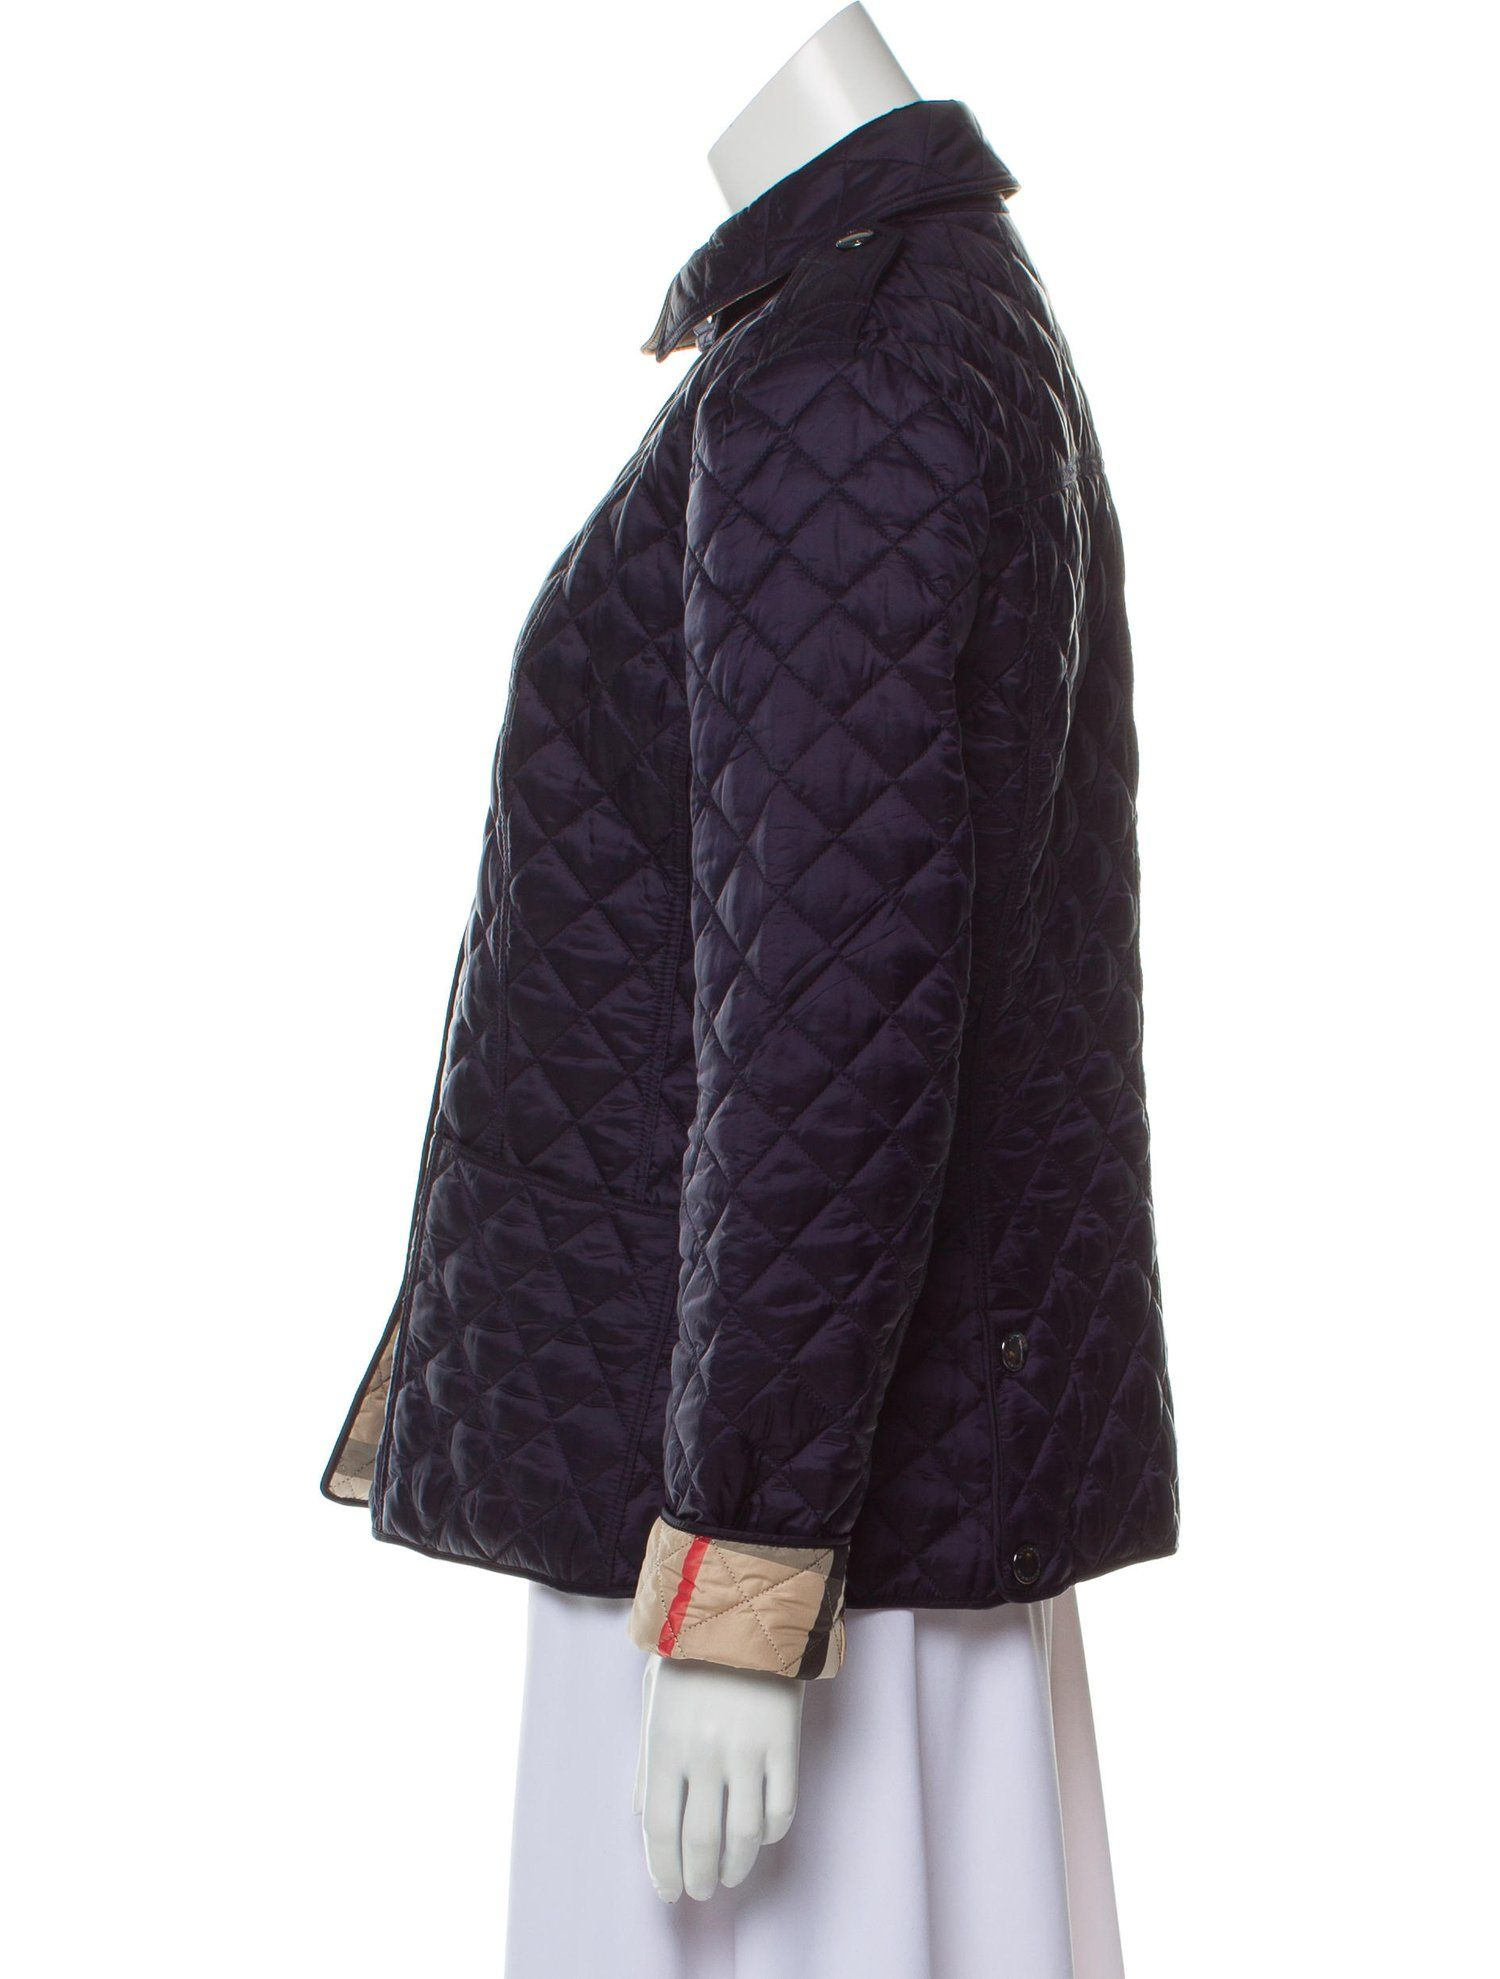 Burberry Quilted Snap Up Jacket Quilted Burberry Jacket Jackets Clothes Burberry Quilted Jacket